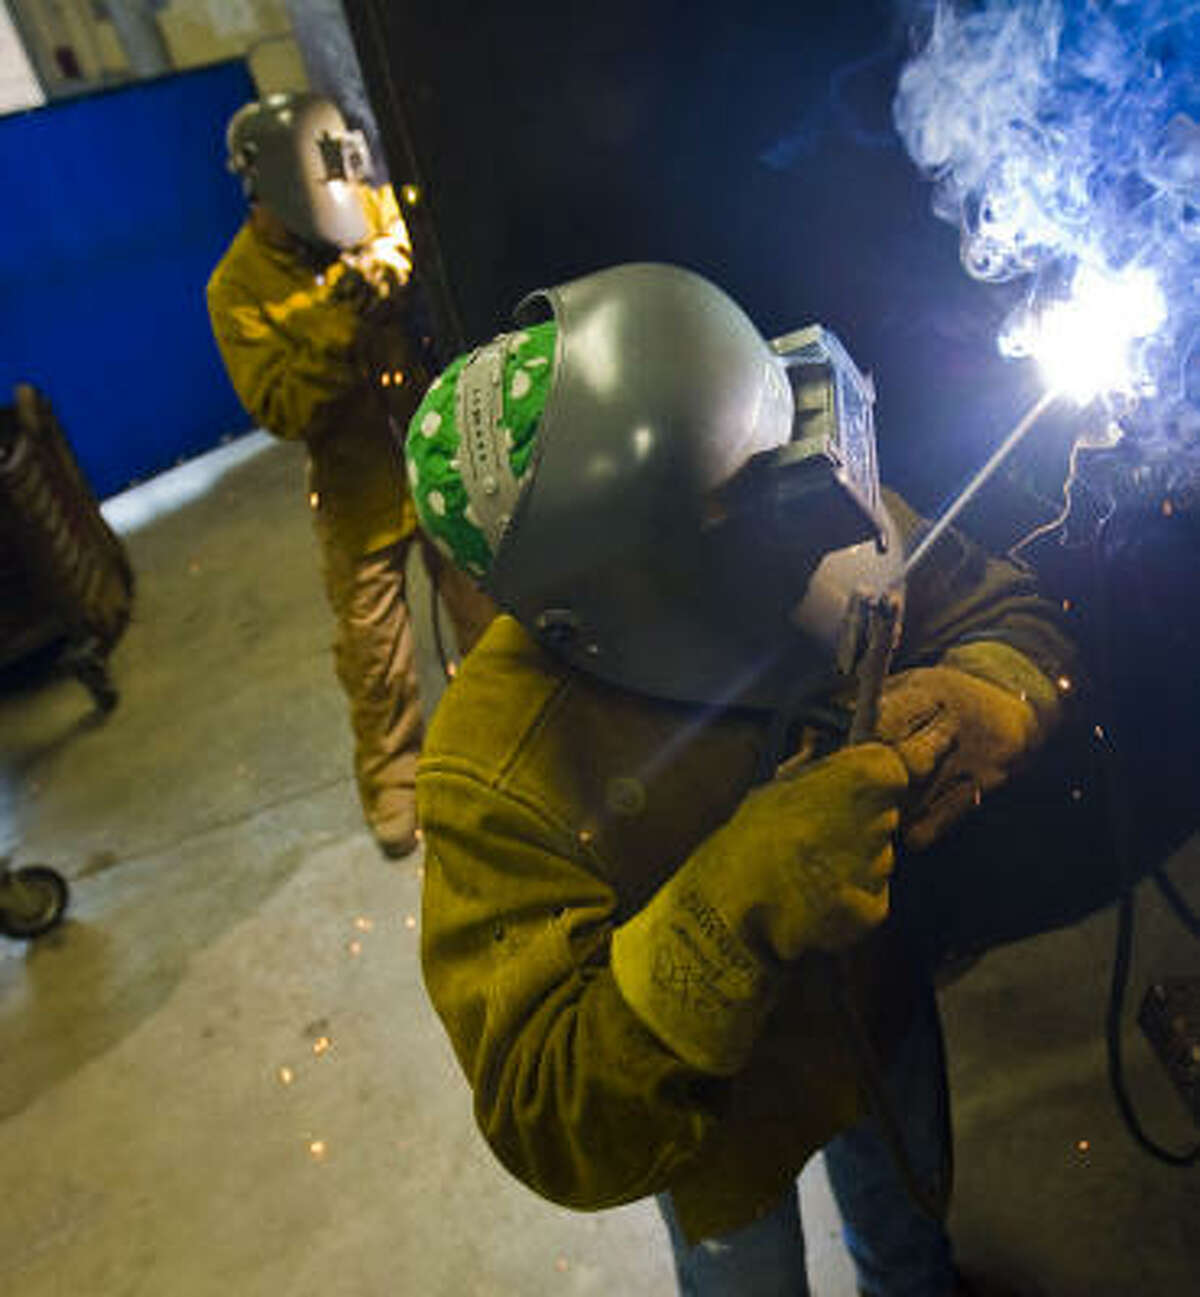 John Kalogeris, left, and Joe Magoffin practice their techniques at a certified welding program in, Columbia, Mo. The two 18-year-olds are among some 2,000 area students taking classes at the center instead of pursuing a four-year bachelor's degree.